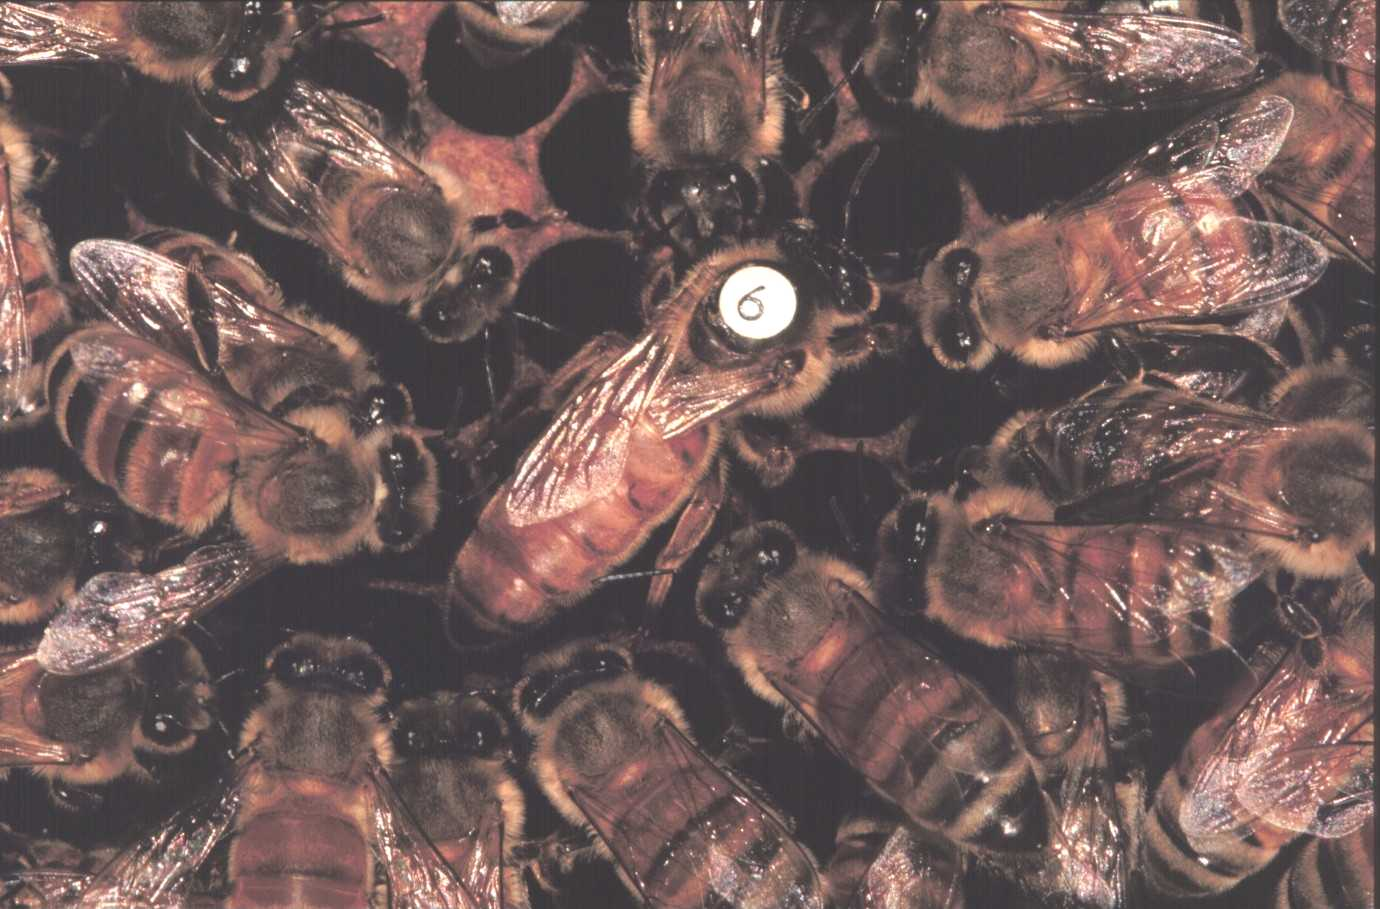 Queen surrounded by attendants